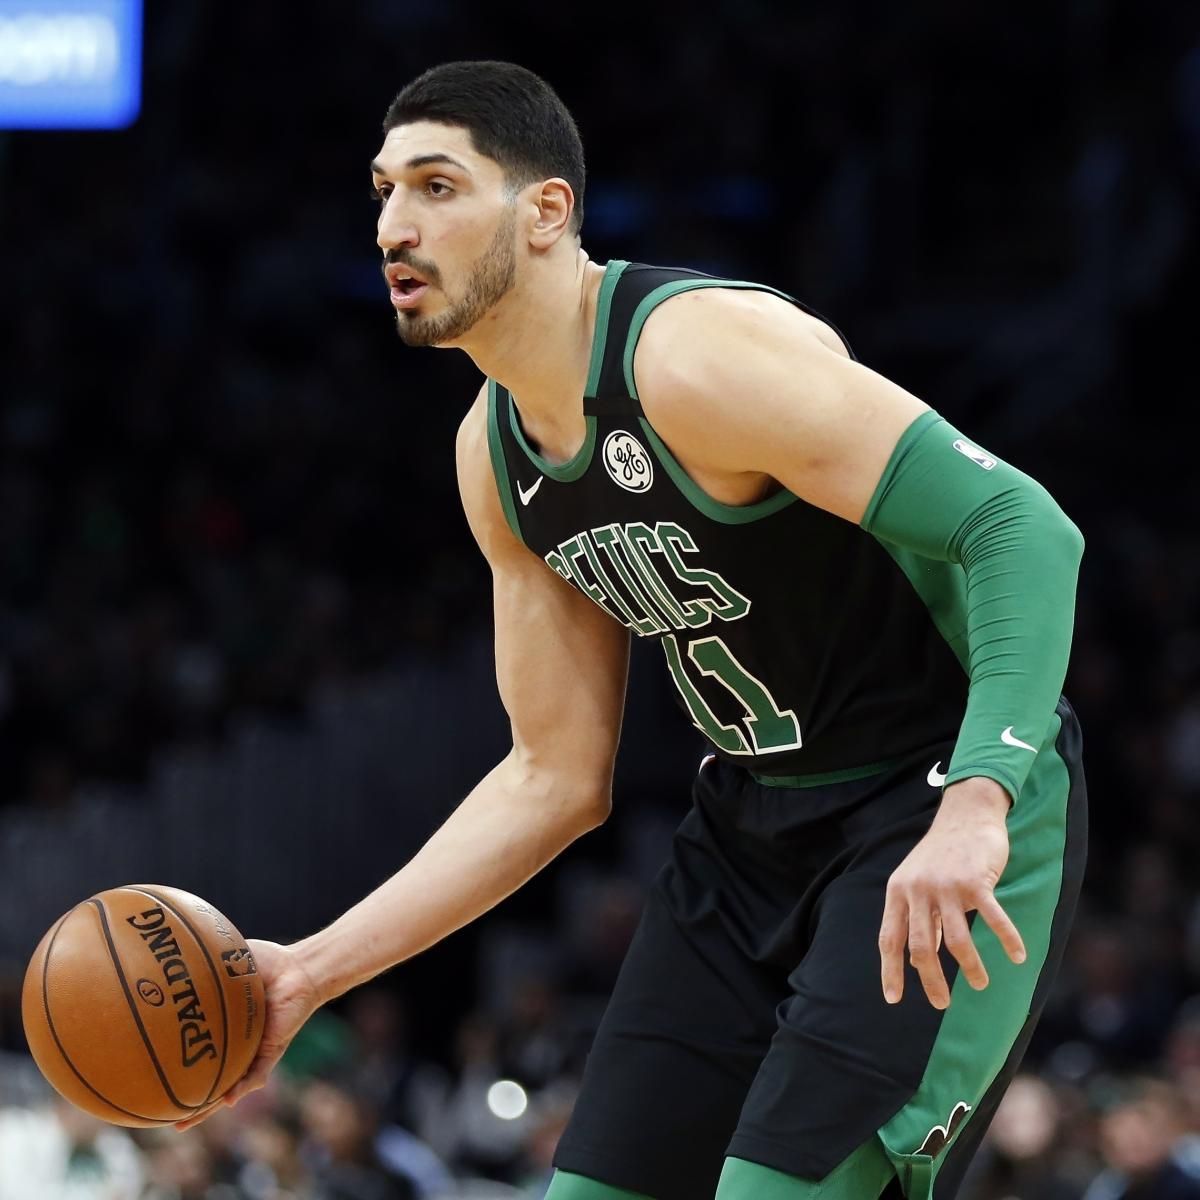 Celtics Video: Marcus Smart and Enes Kanter's Swim Race Comes Down to the Wire thumbnail